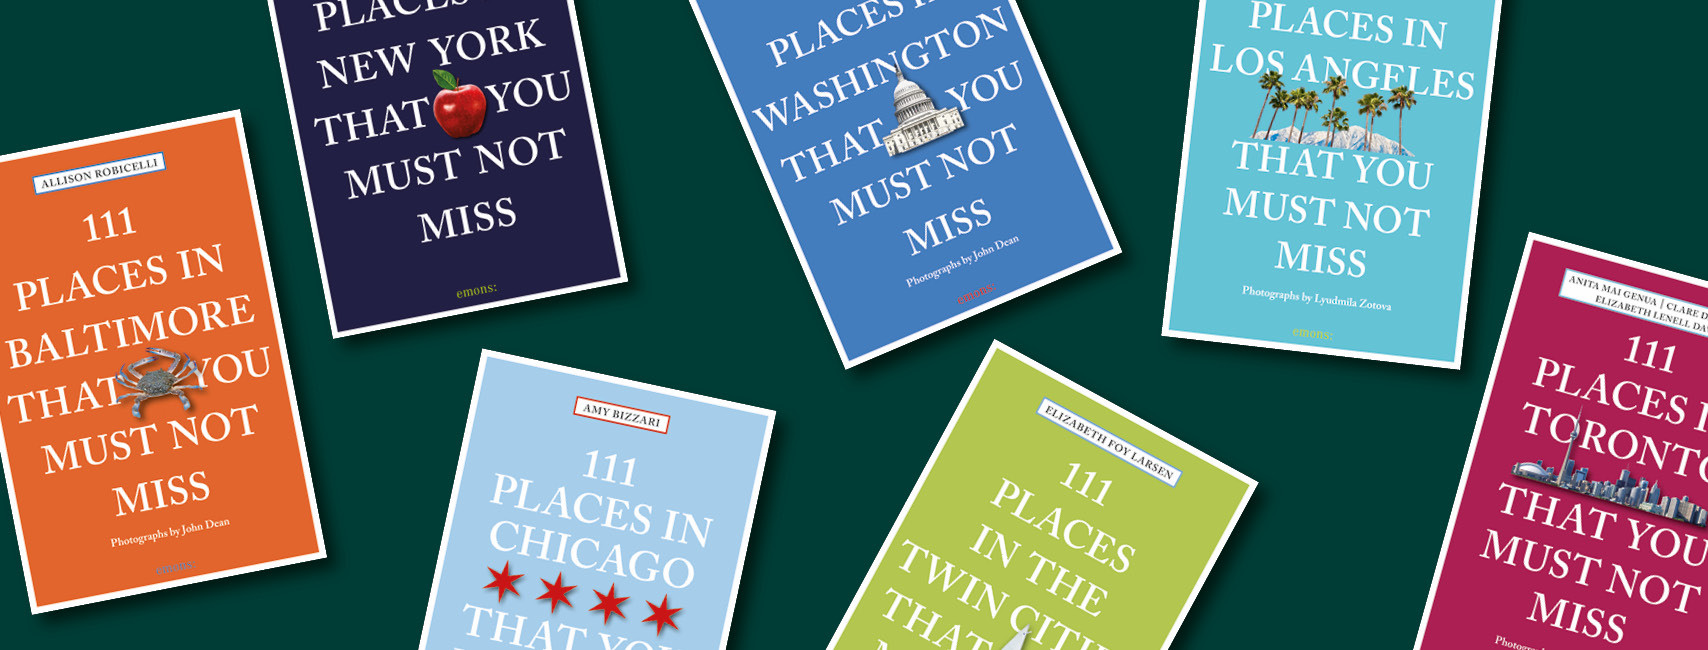 Discover Local Gems   111 Places Insiders' Guidebooks